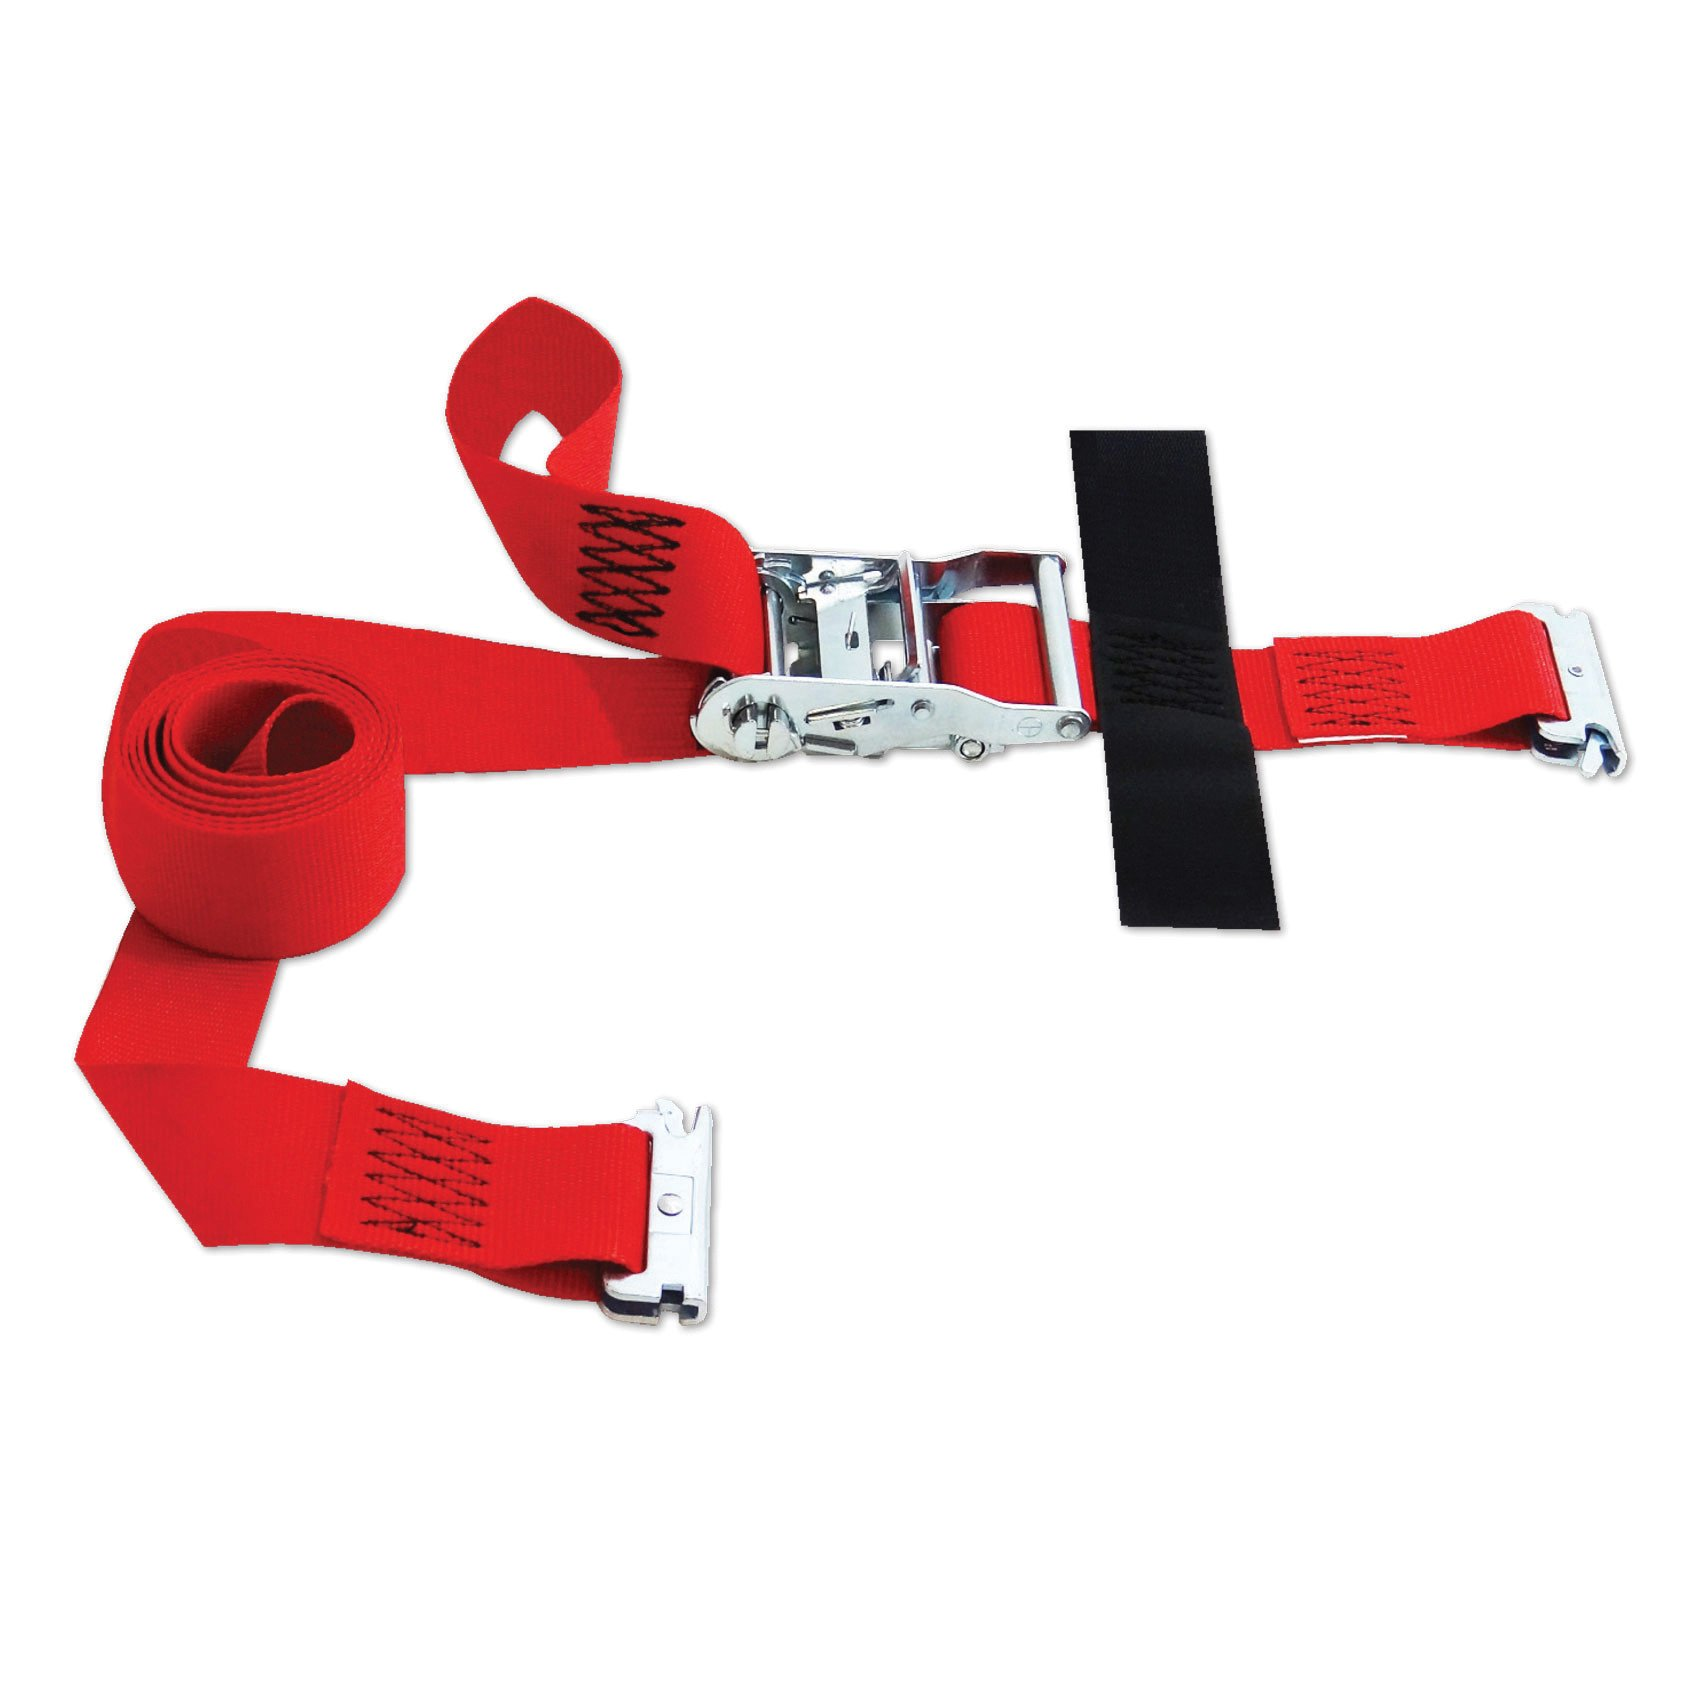 SNAPLOCS E-STRAP 2''x8' RATCHET (USA!) with Hook & Loop storage fastener by Snap-Loc